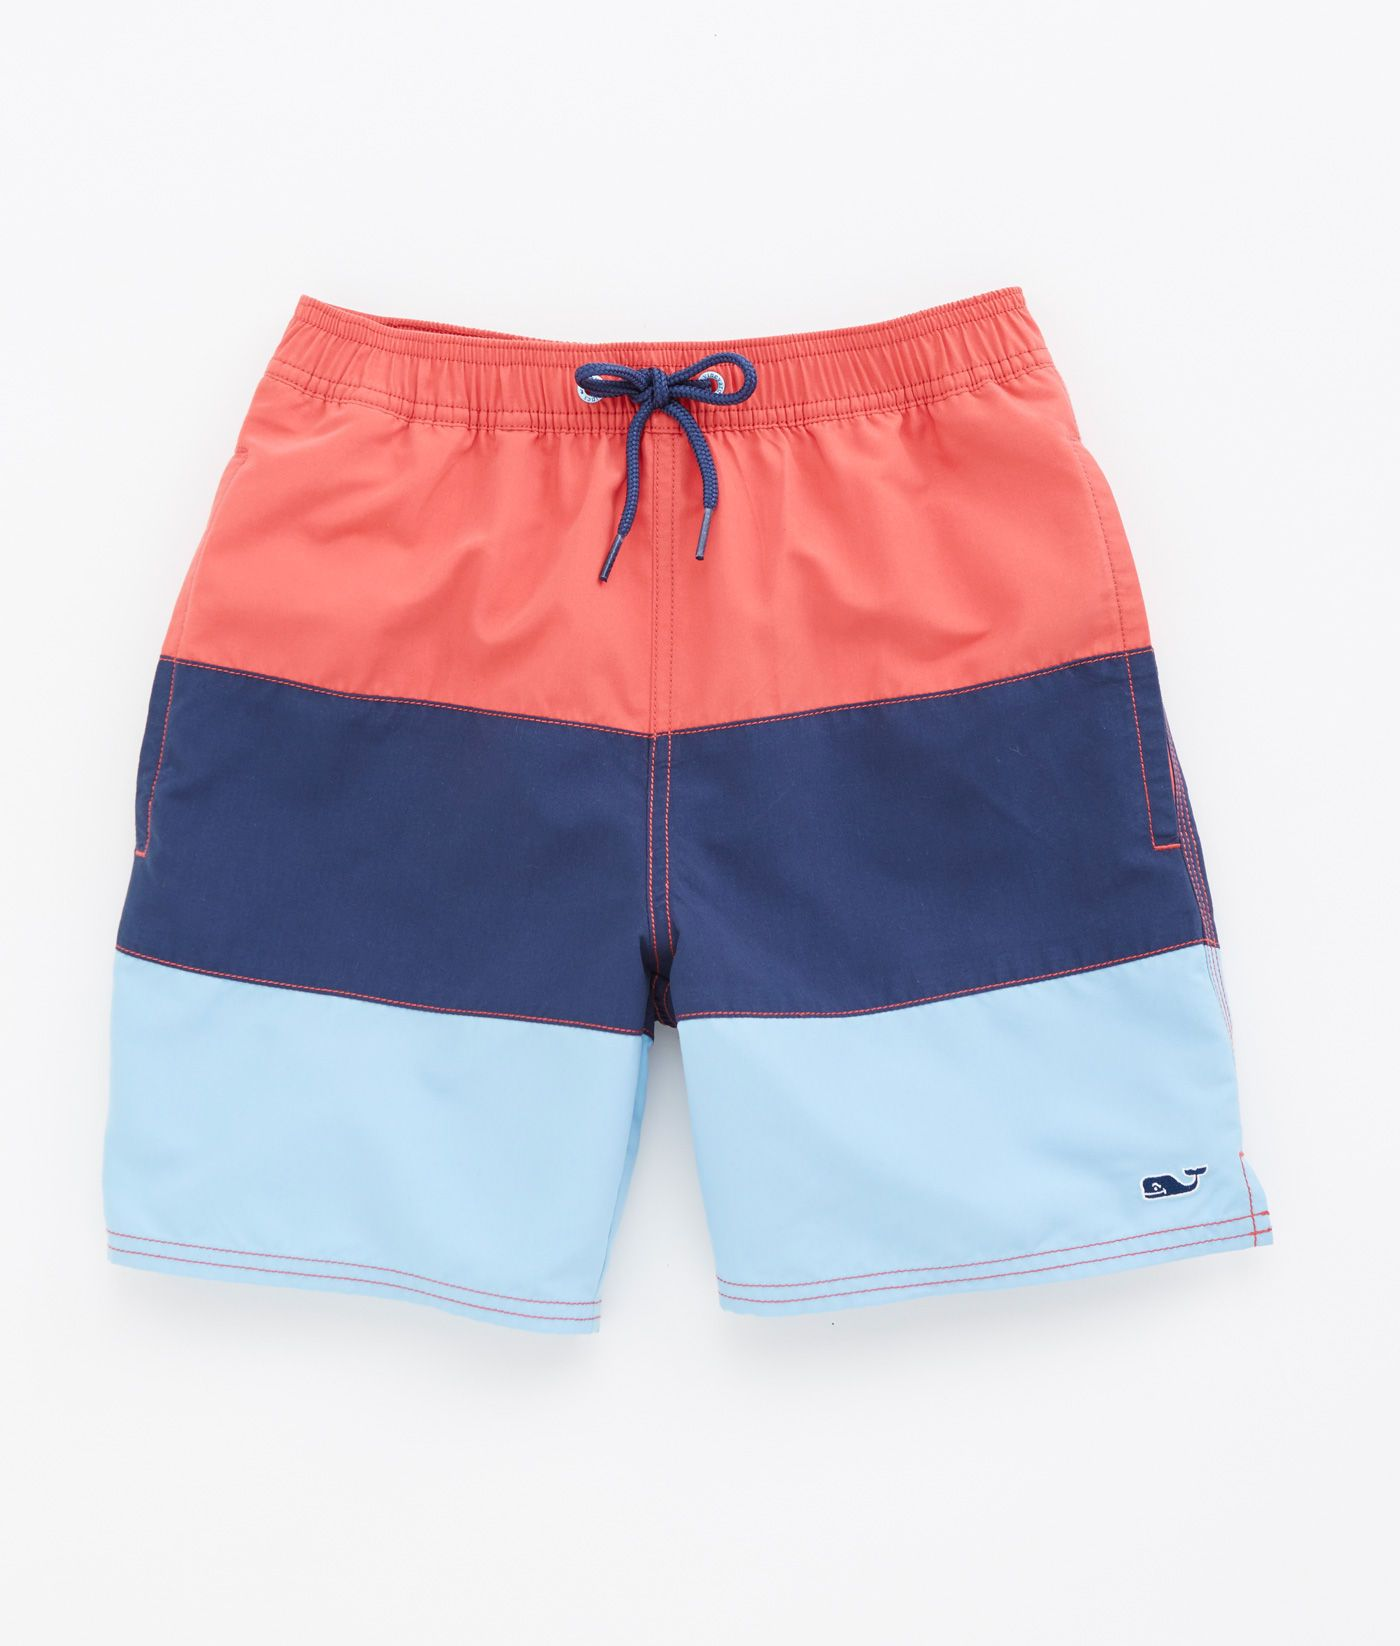 Shop the Matalan range of boys' swimwear, including swim shorts with their favourite character prints. You can also find surfsuits, goggles & towels. By browsing Matalan, you agree to our use of cookies.